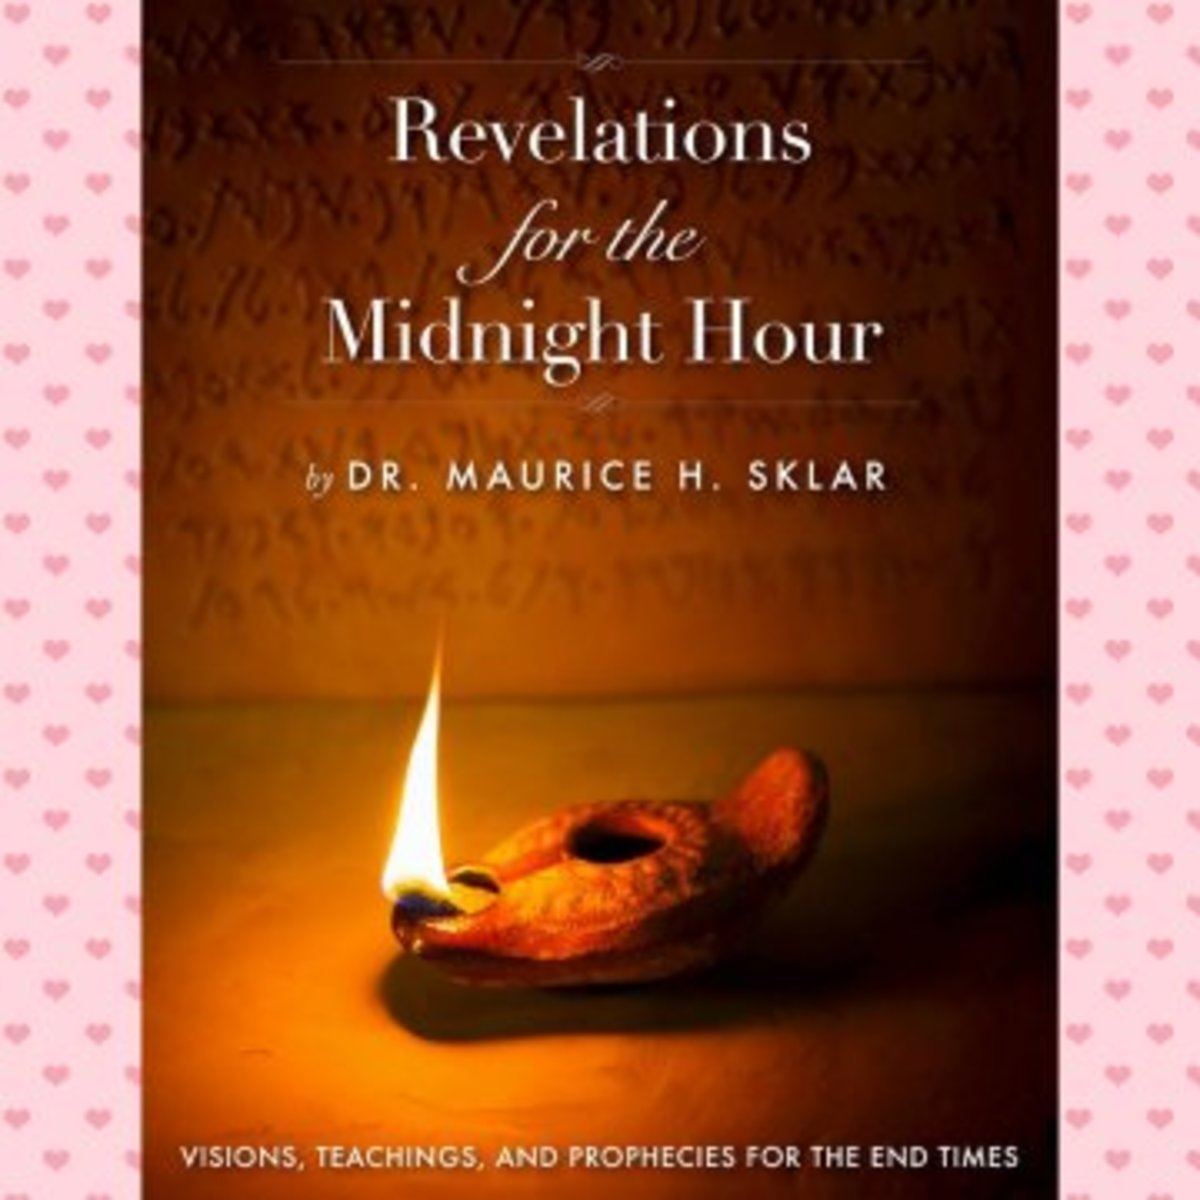 revelations-for-the-midnight-hour-by-dr-maurice-sklar-2-book-review